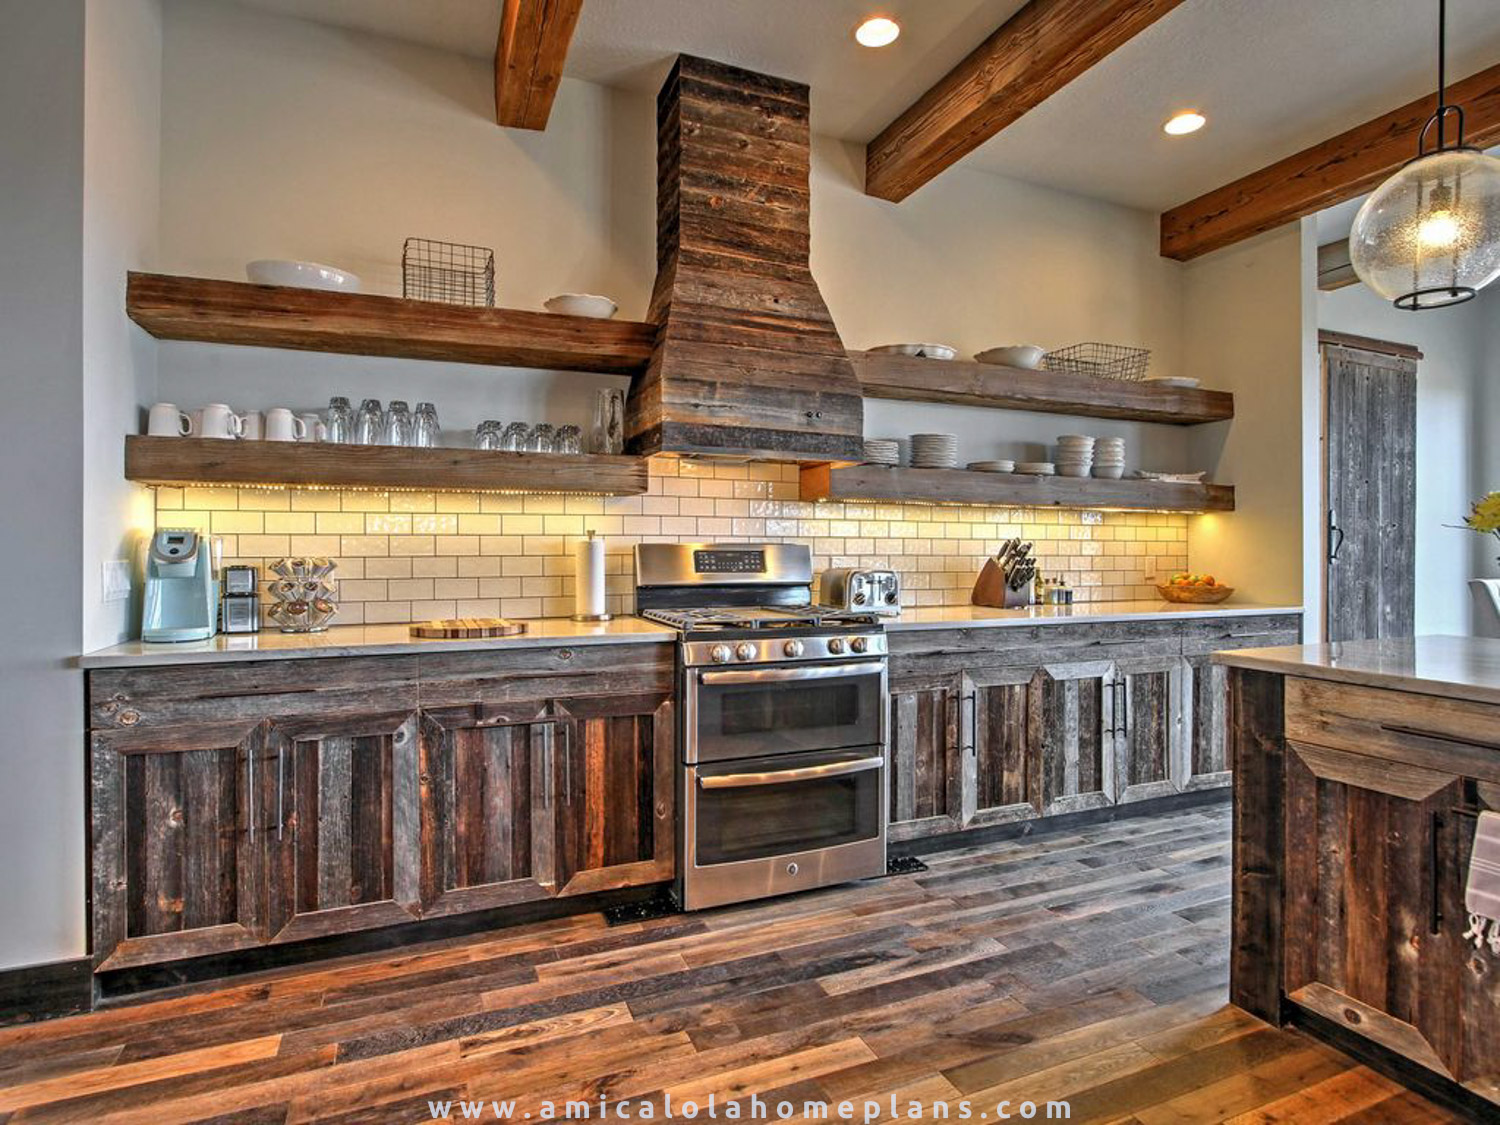 Skwalker Ranch Floor Plan by Klippel Residential Design Kitchen-6.jpg